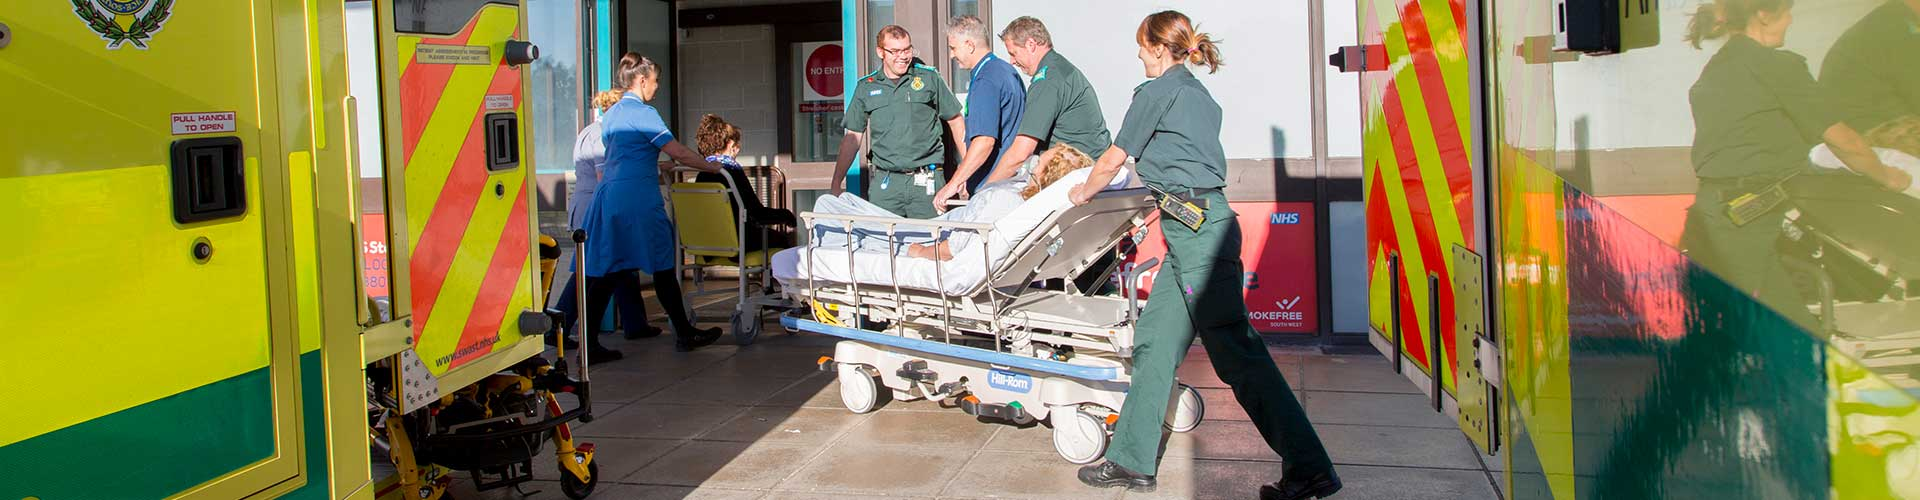 Emergency Department and Minor Injury waiting times